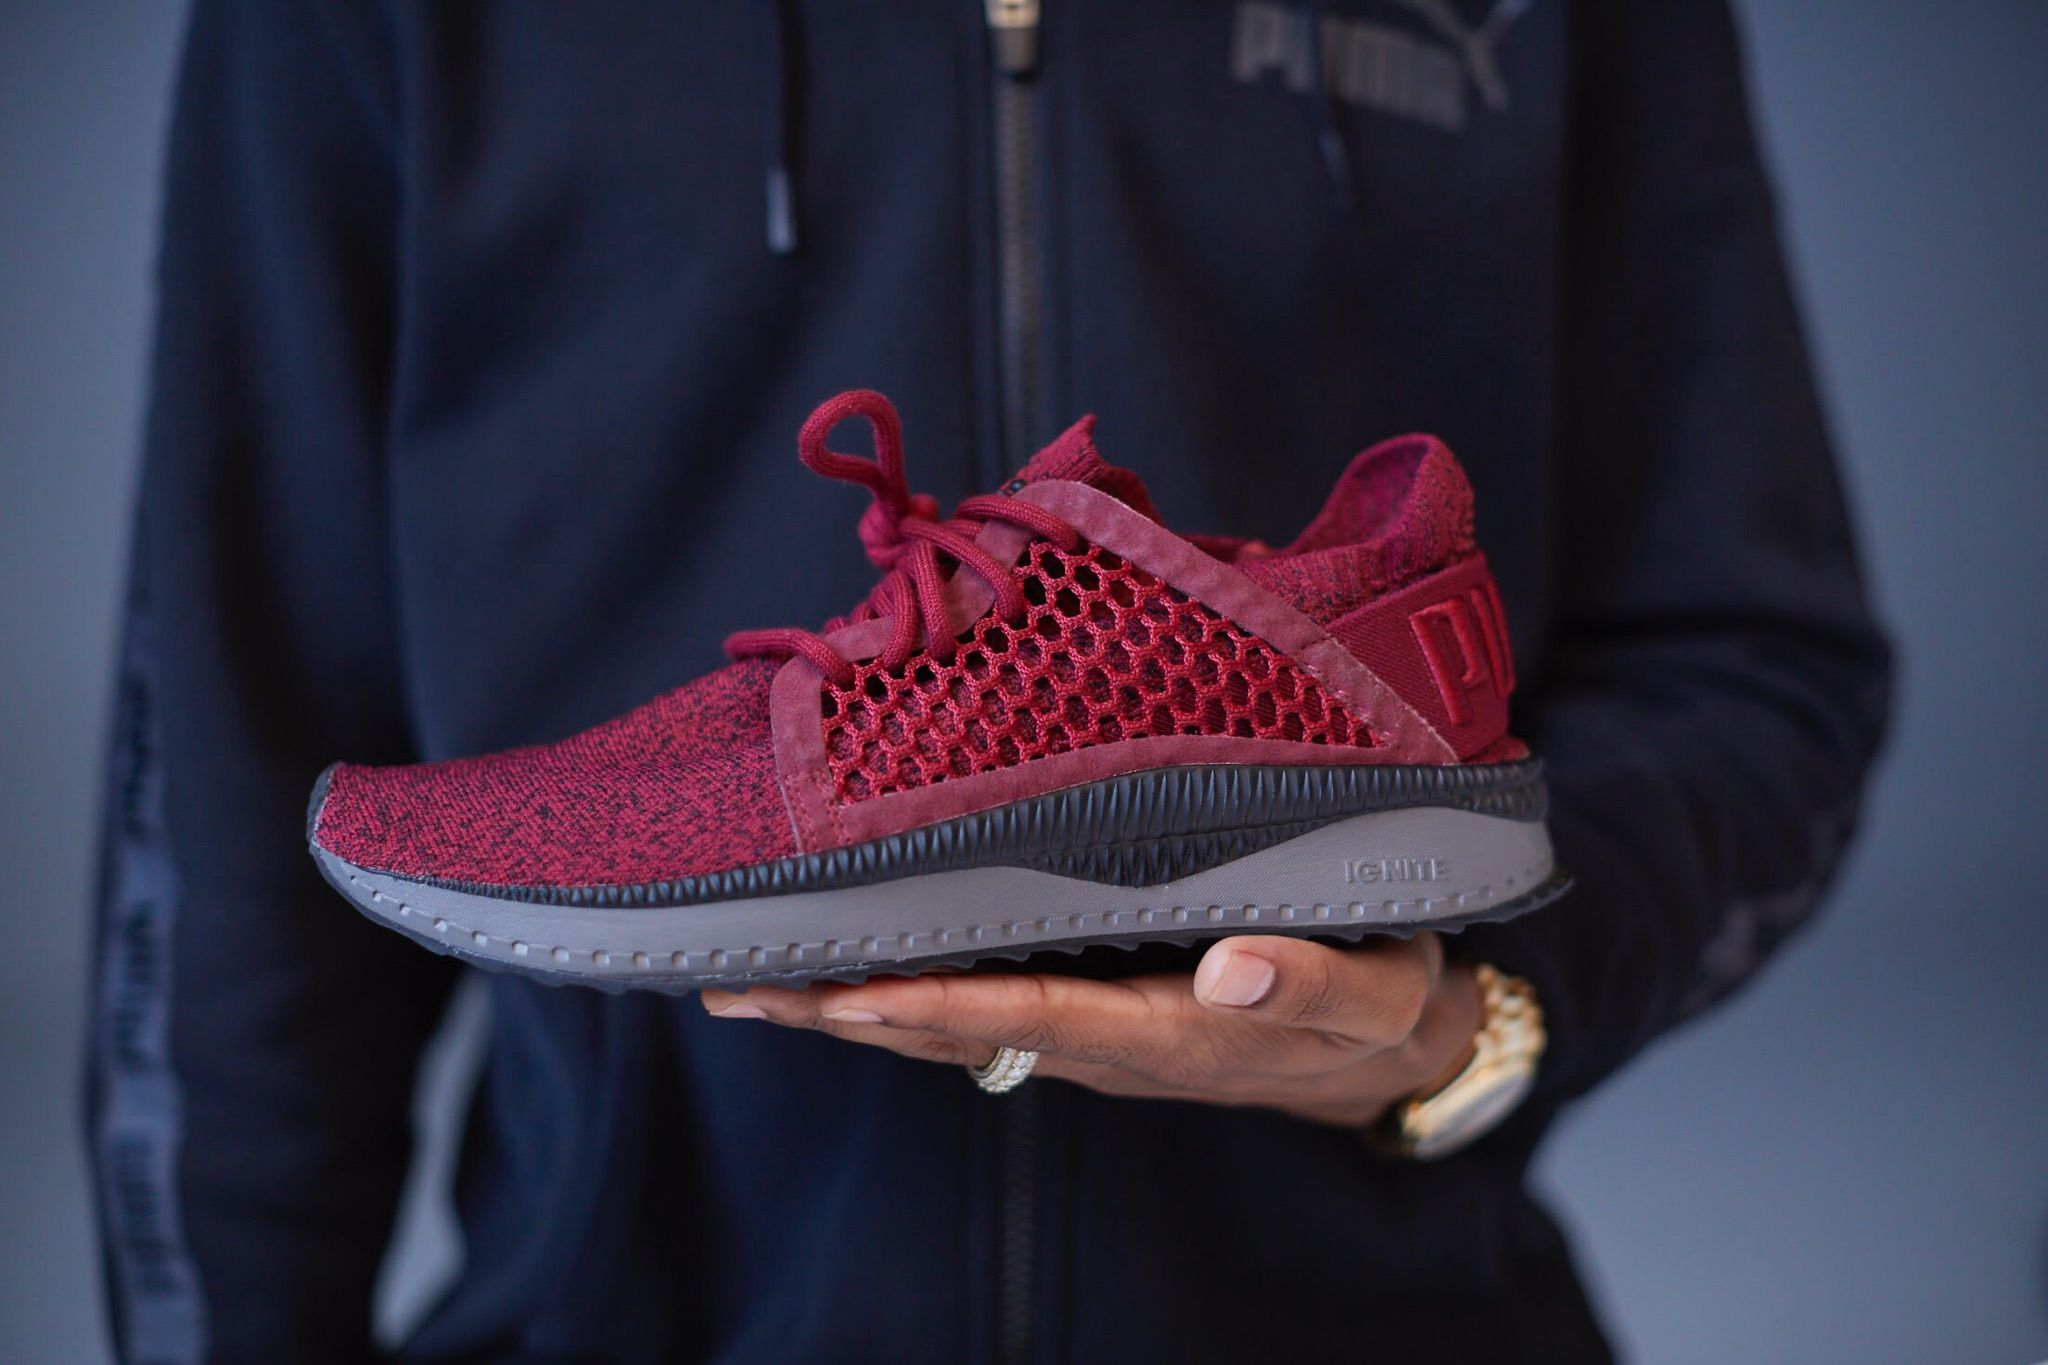 136d4e55371 The PUMA TSUGI NETFIT evoKNIT Triumph Red will release at select retailers  on September 26th at